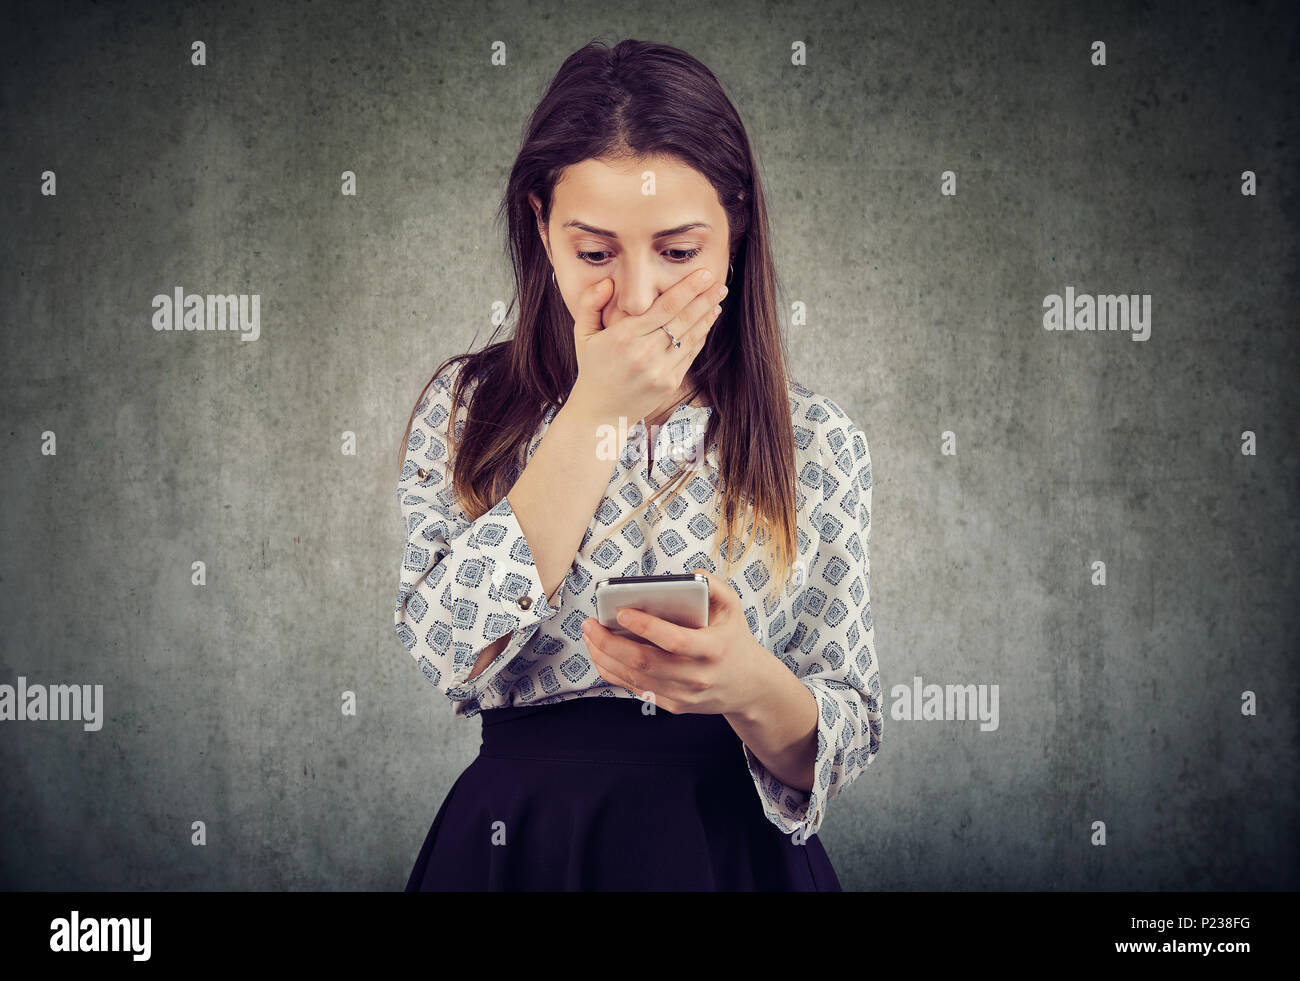 Young woman covering mouth in astonishment while reading message on smartphone looking stunned. - Stock Image